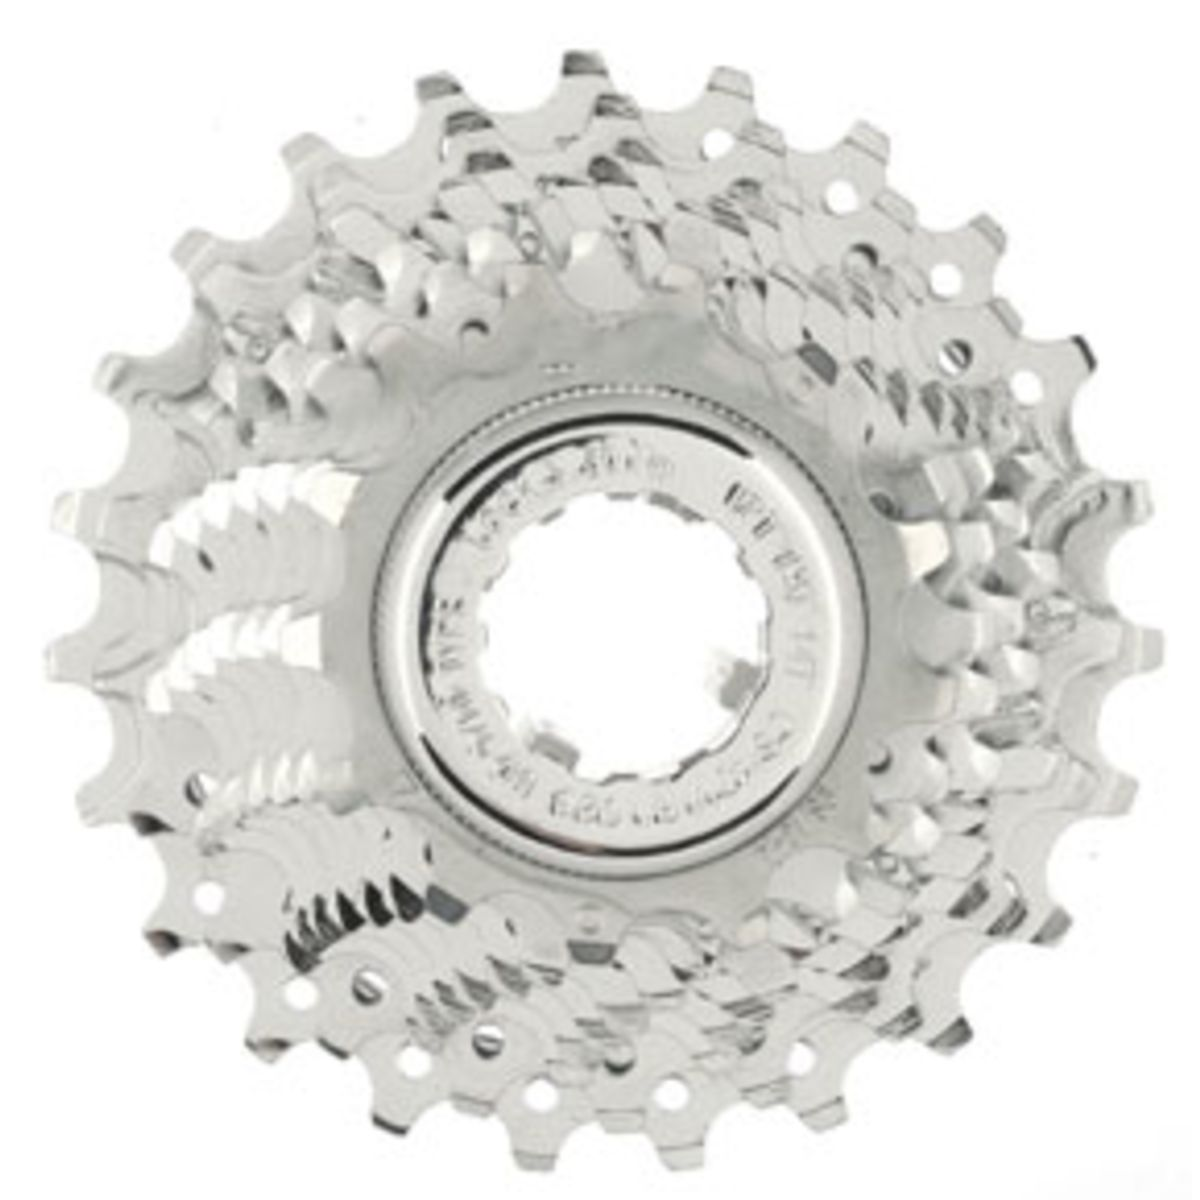 Veloce Ultra-Drive 9-speed cassette 13-23 ratio